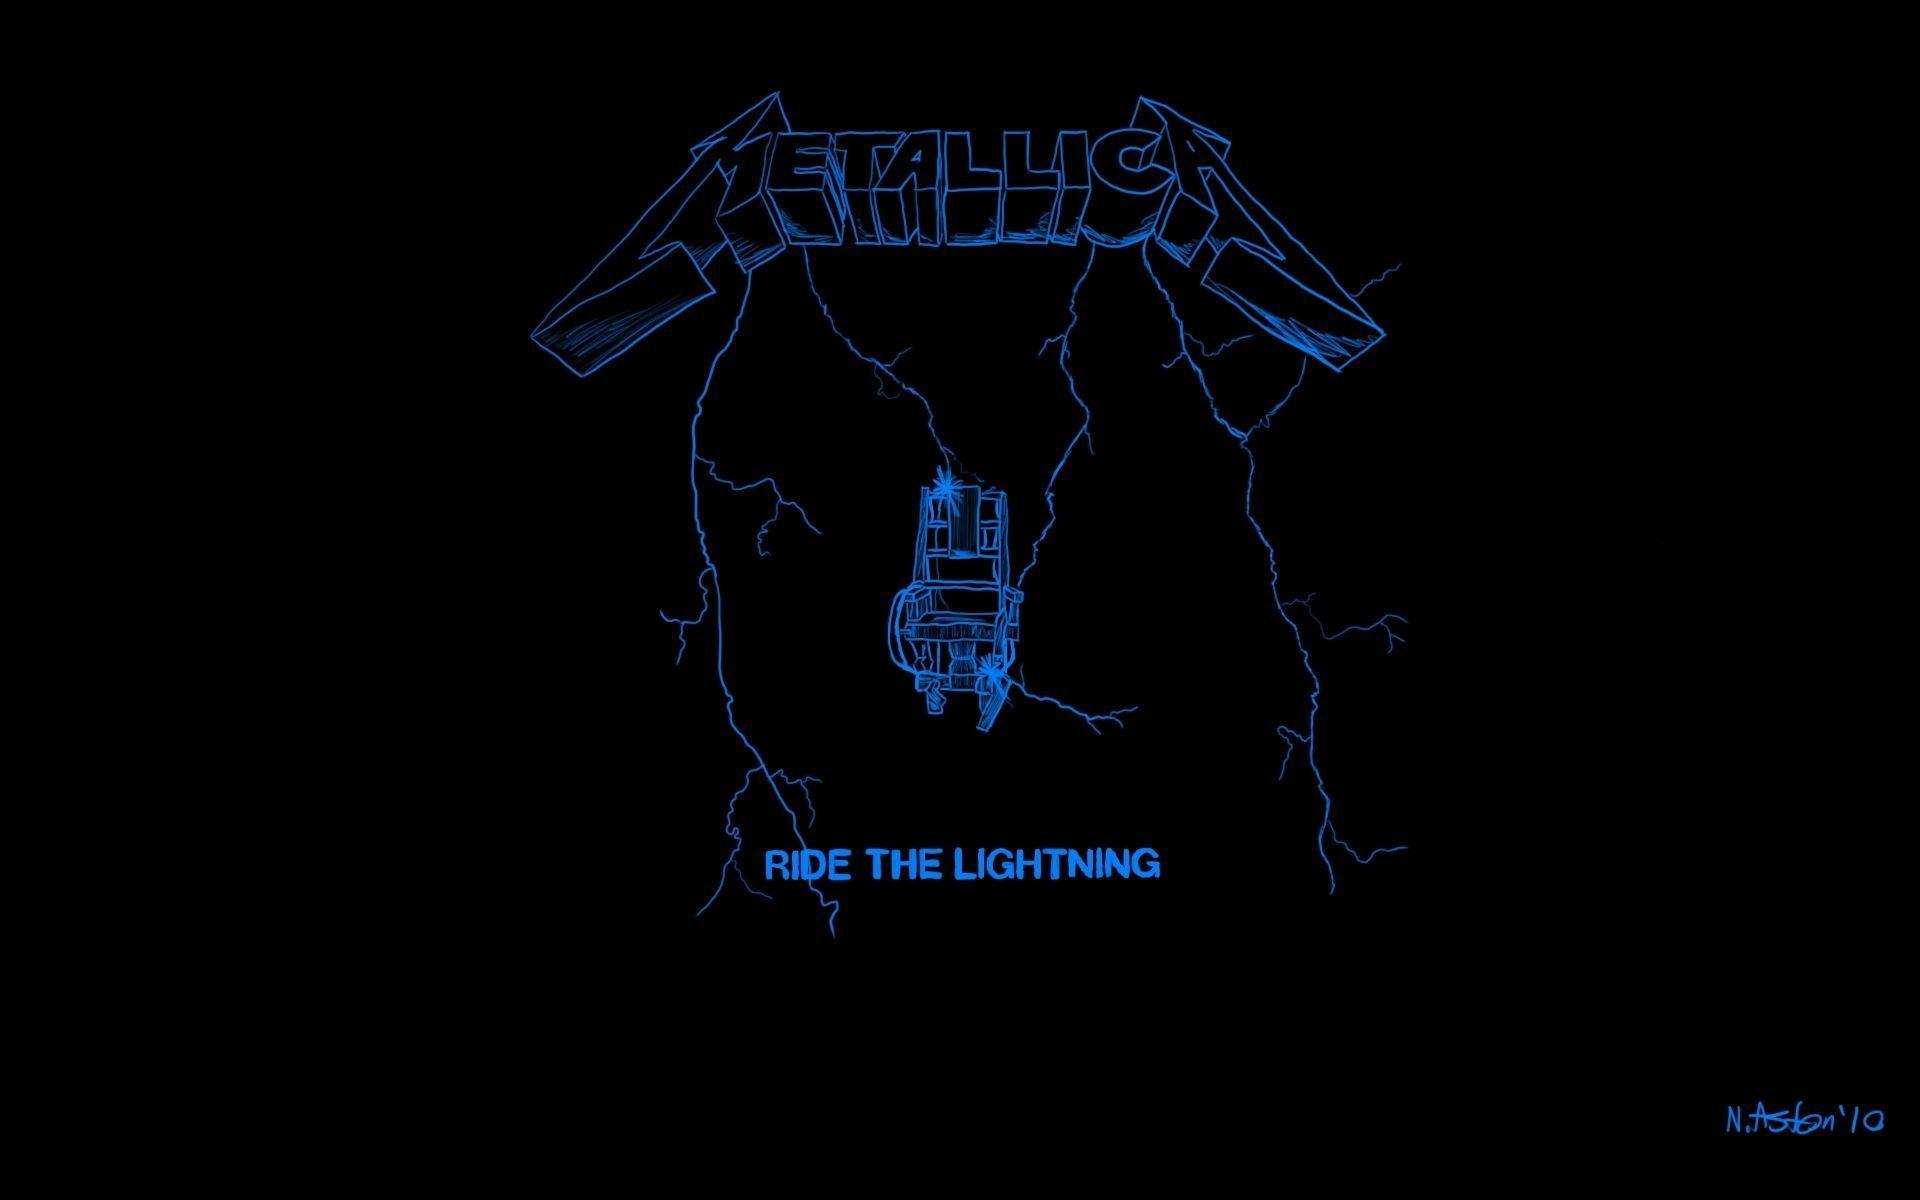 metallica lighting logo wallpaper - photo #5